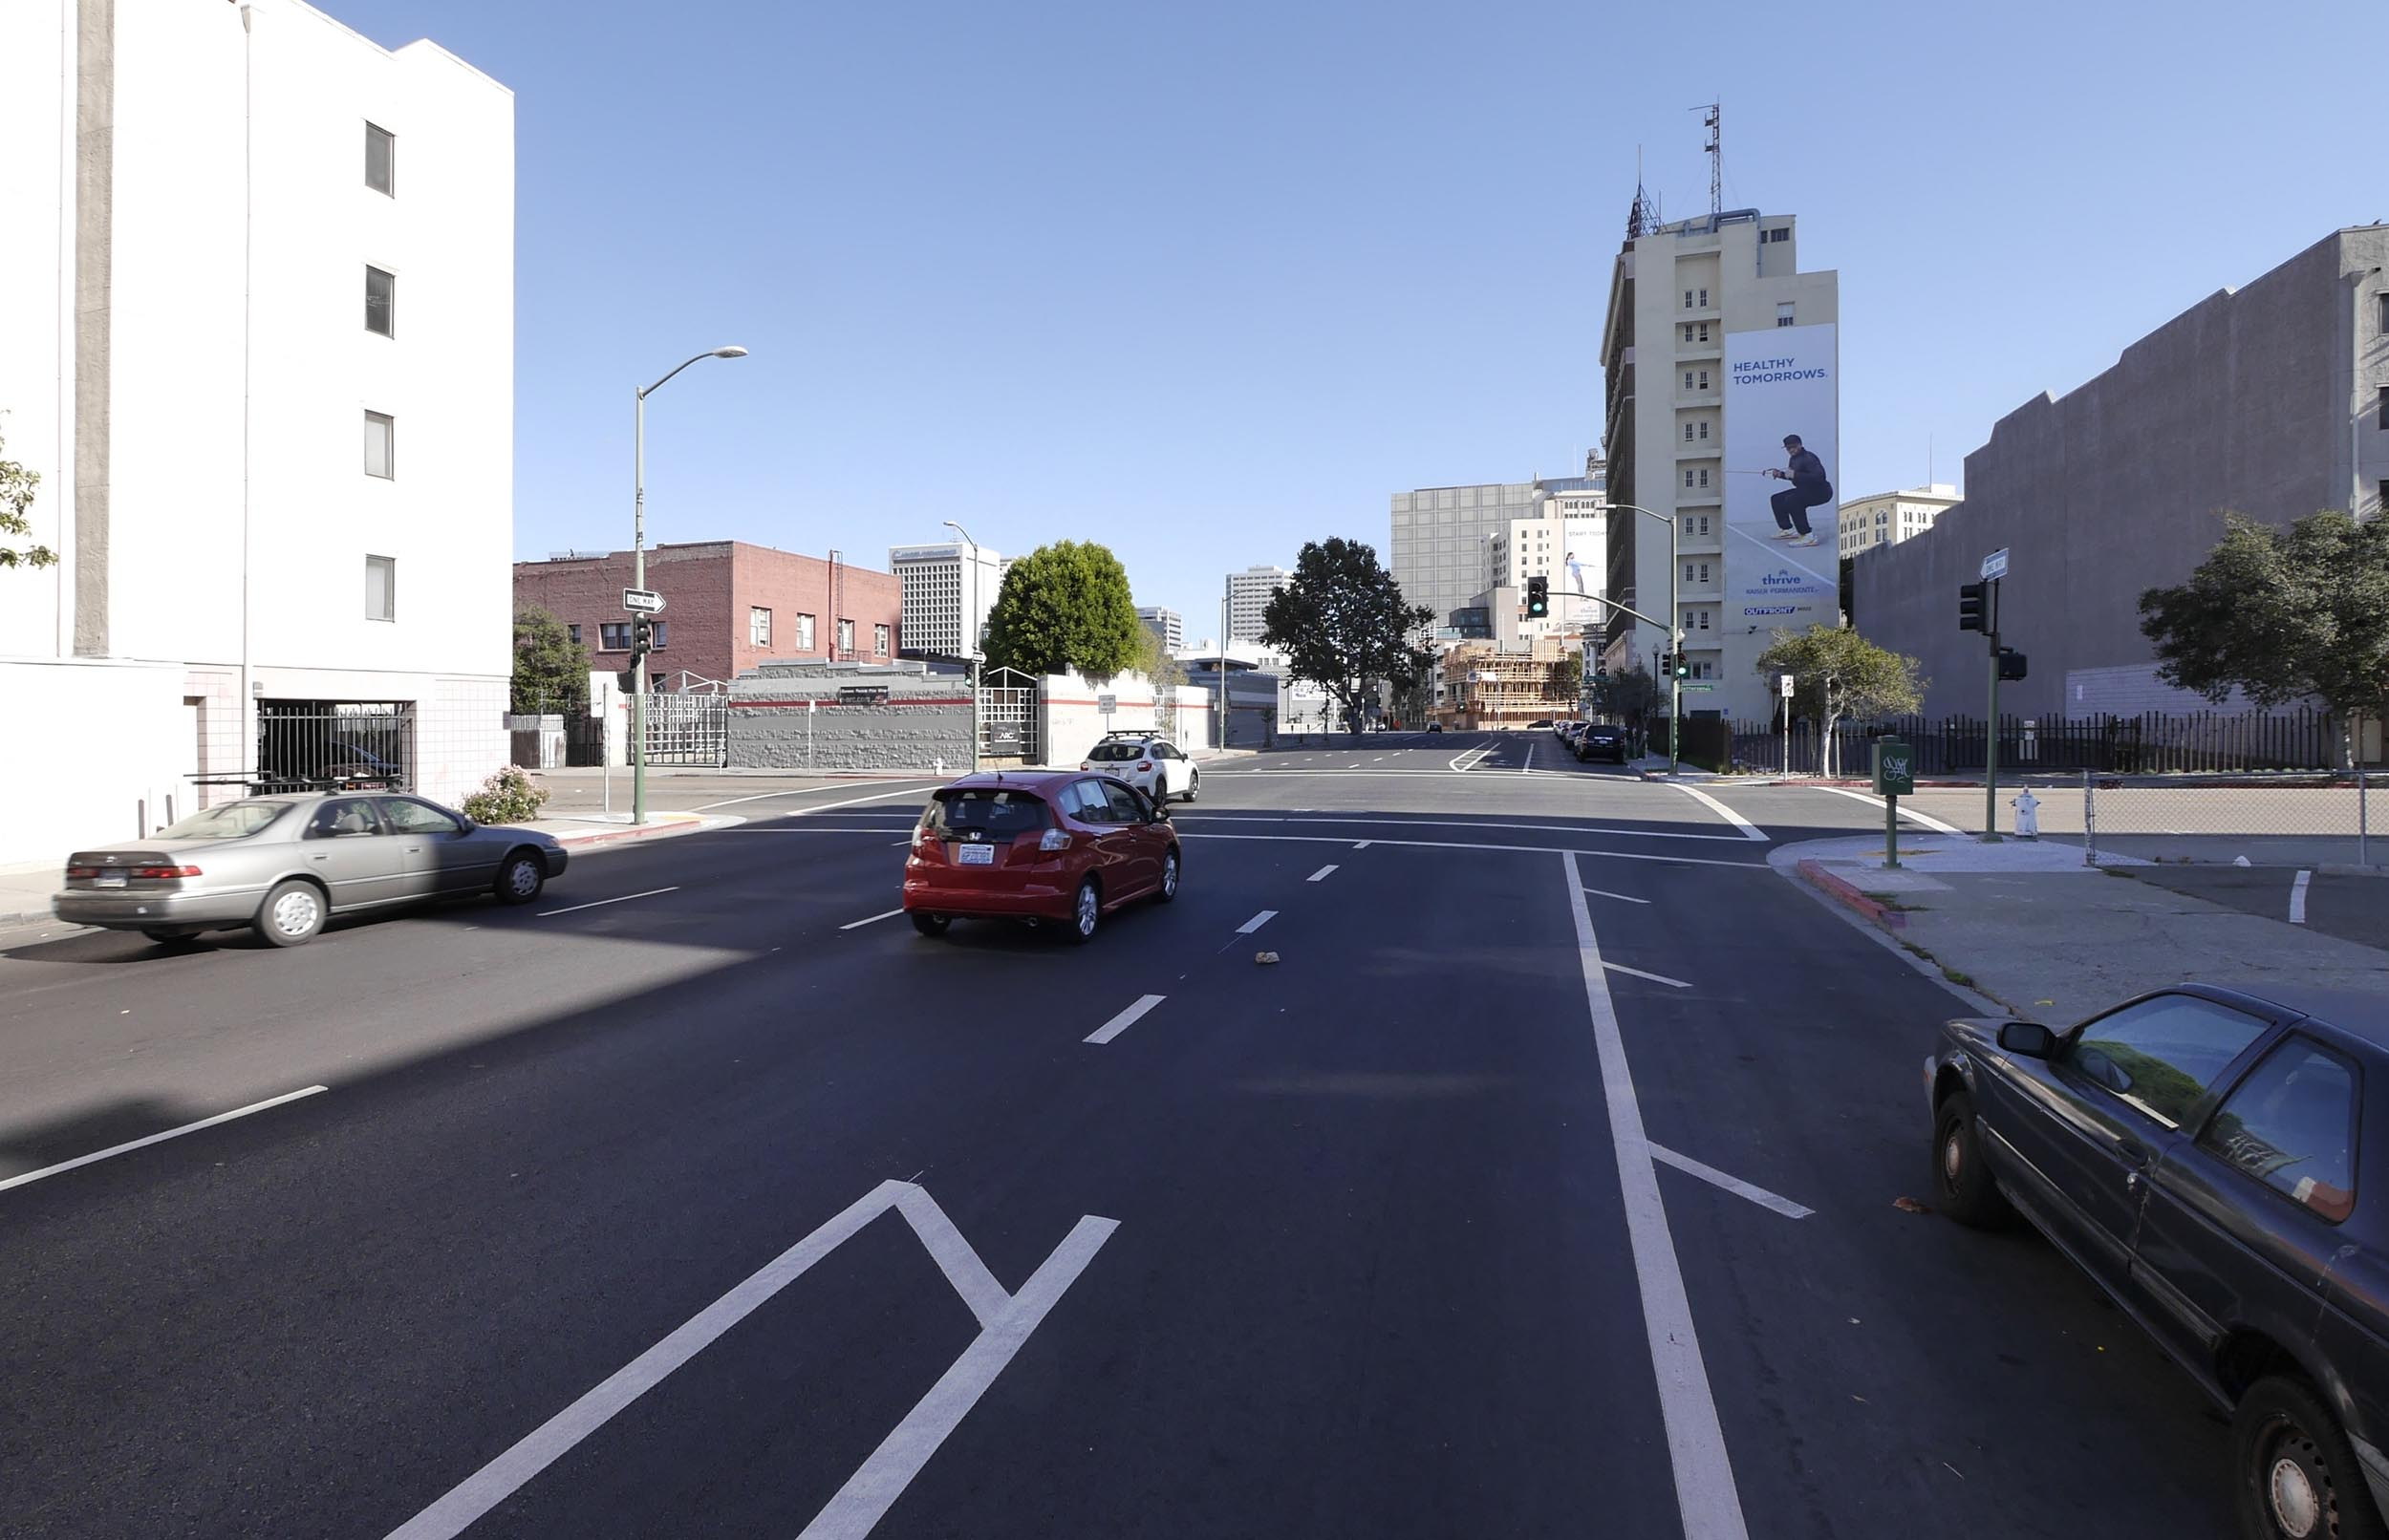 17th Street - Existing